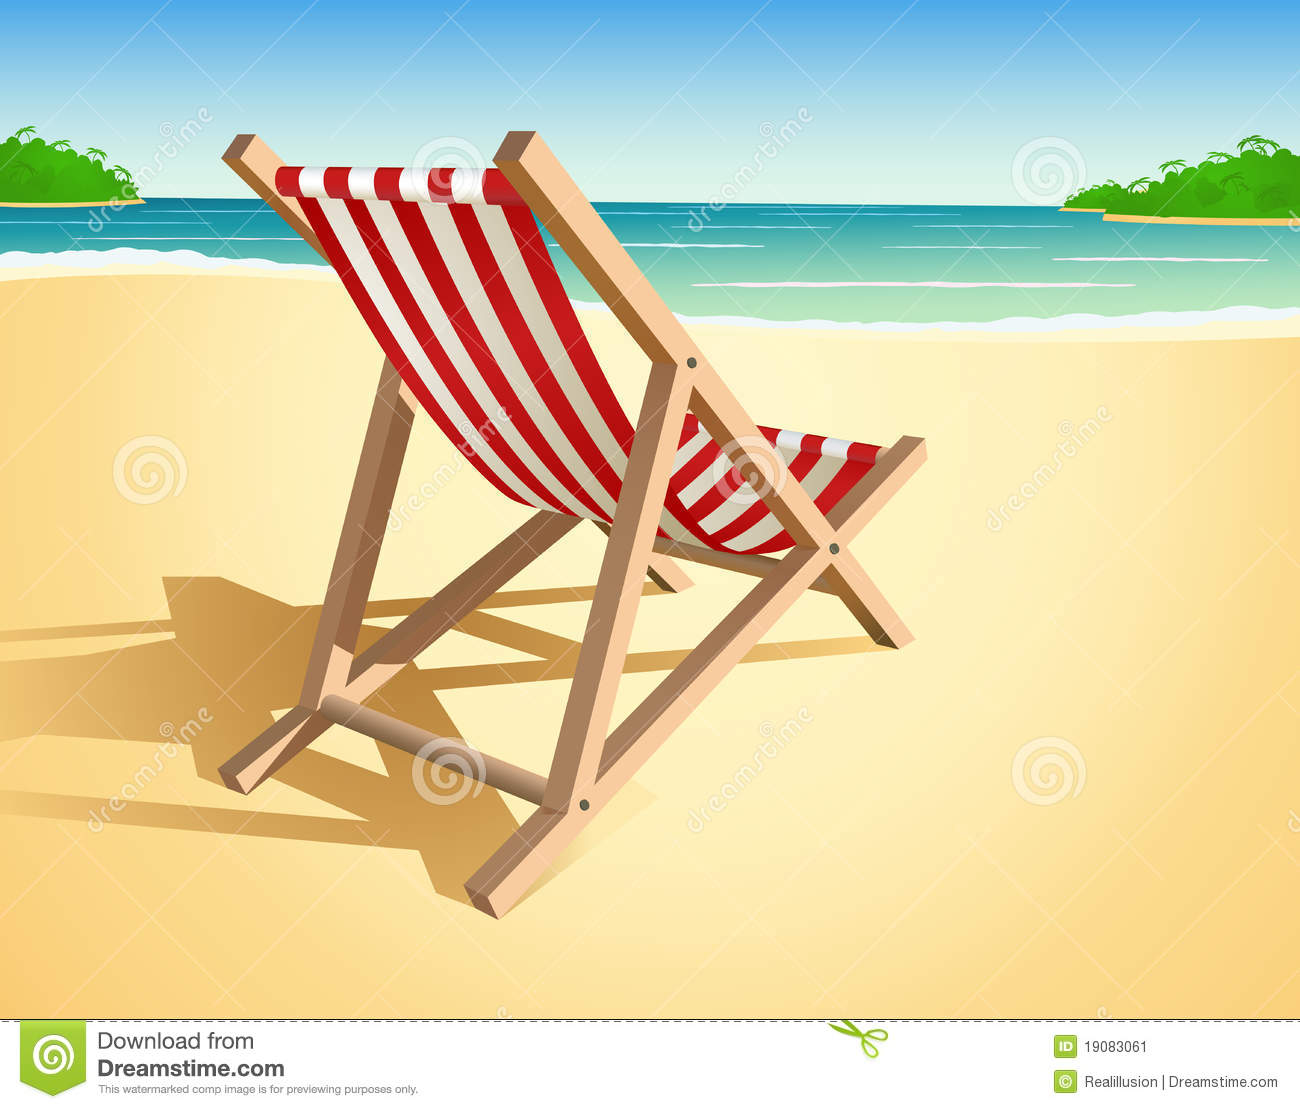 wooden lounge chair plans walmart camping chairs beach illustration stock vector. image of object - 19083061